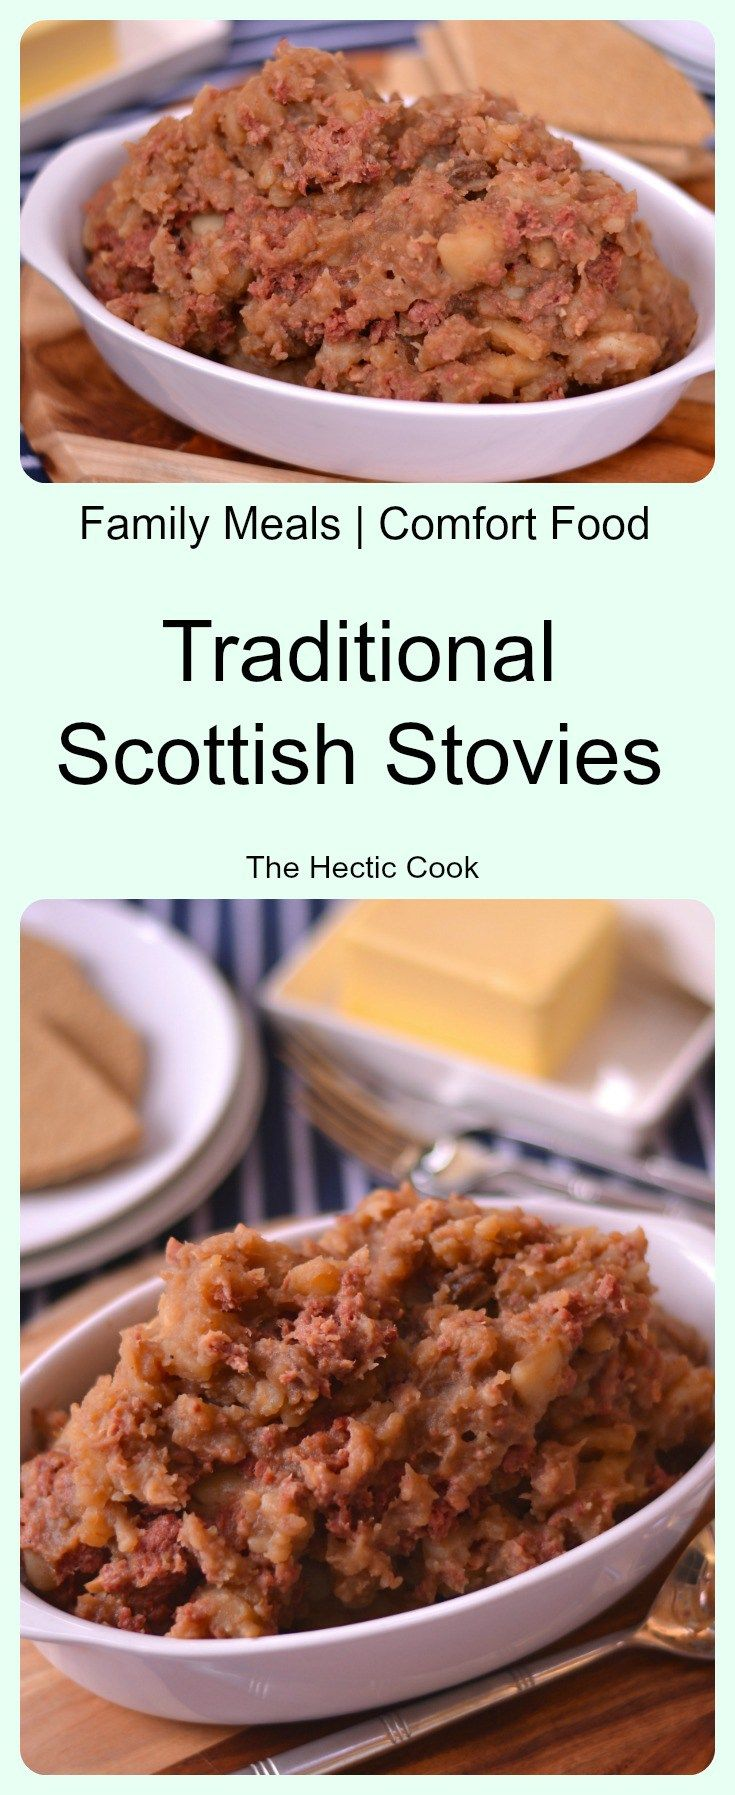 Traditional Scottish Stovies - The ultimate comfort food, Scottish Stovies are loved by a nation for good reason. So simple to make and really delicious. | thehecticcook.com